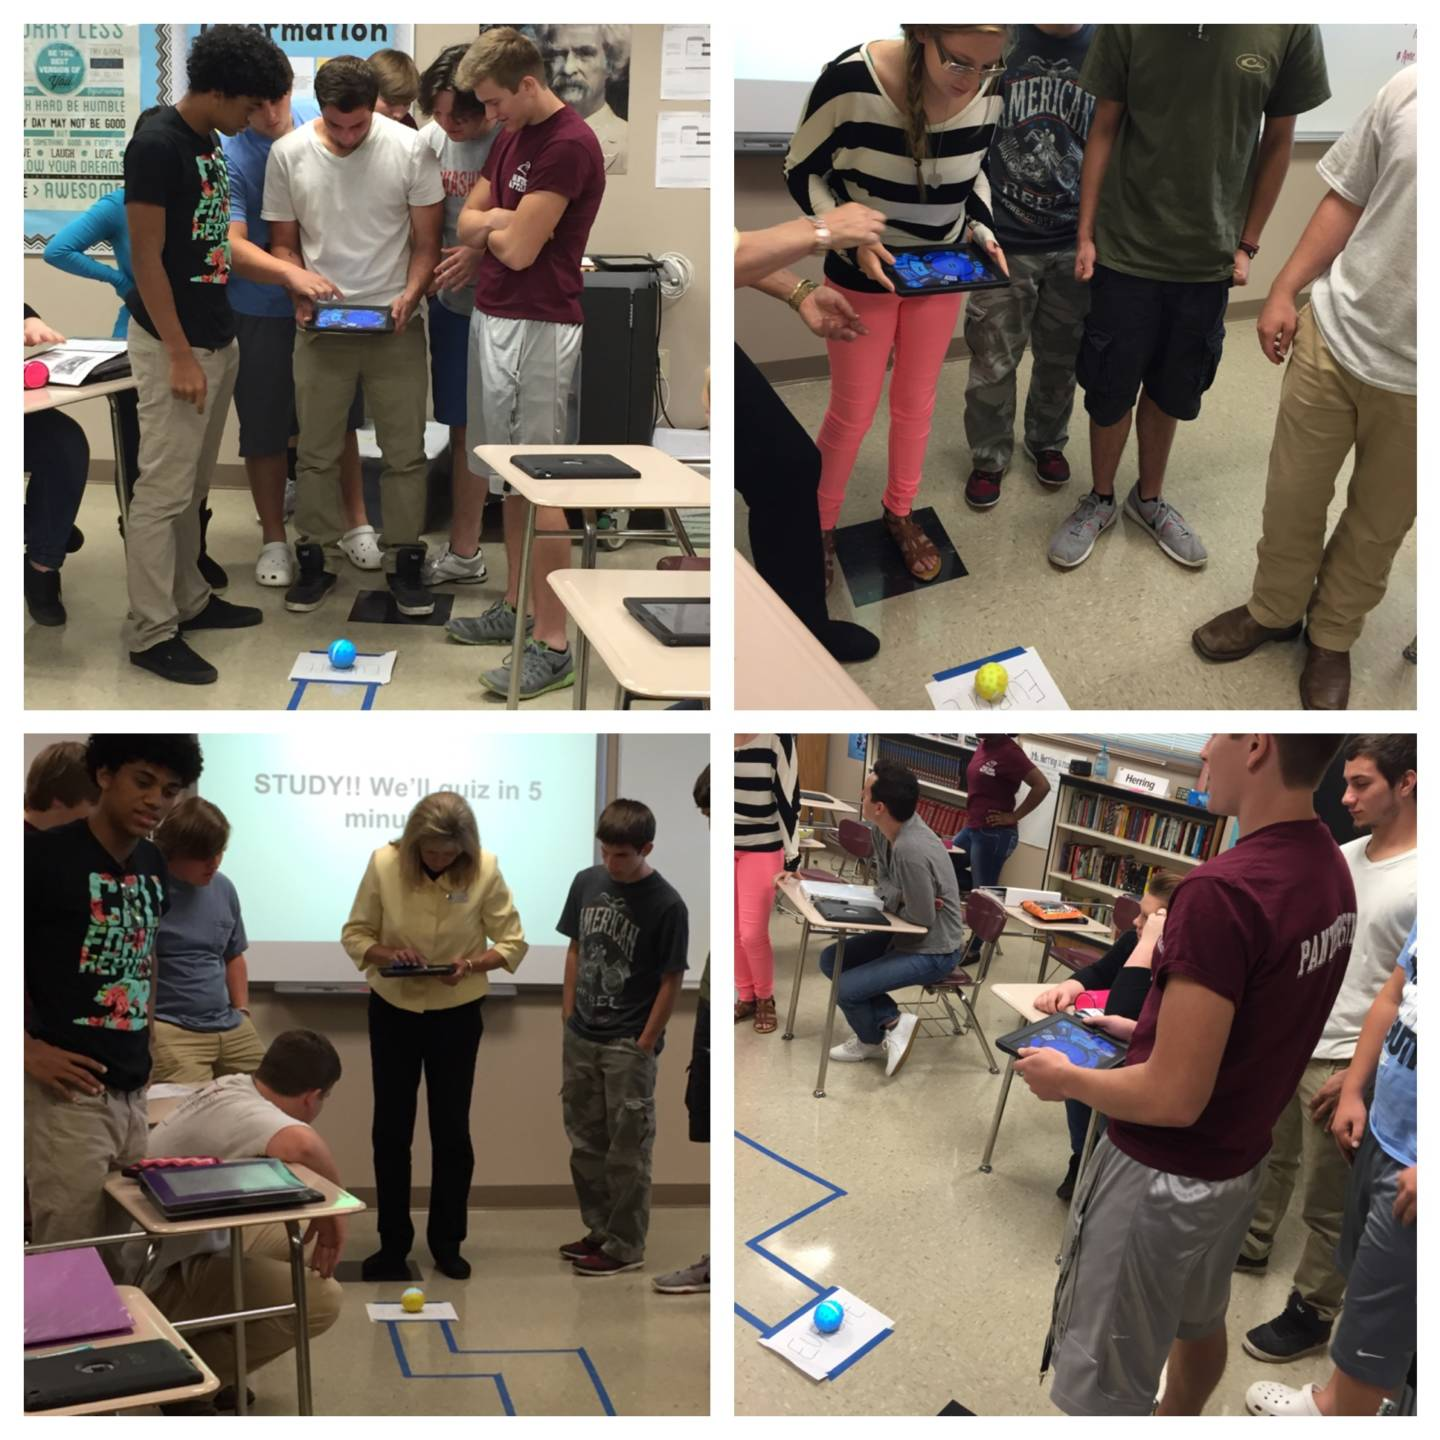 Students experiment with the Spheros, learning how to manipulate them through a maze representing the journey from Europe to the New World.